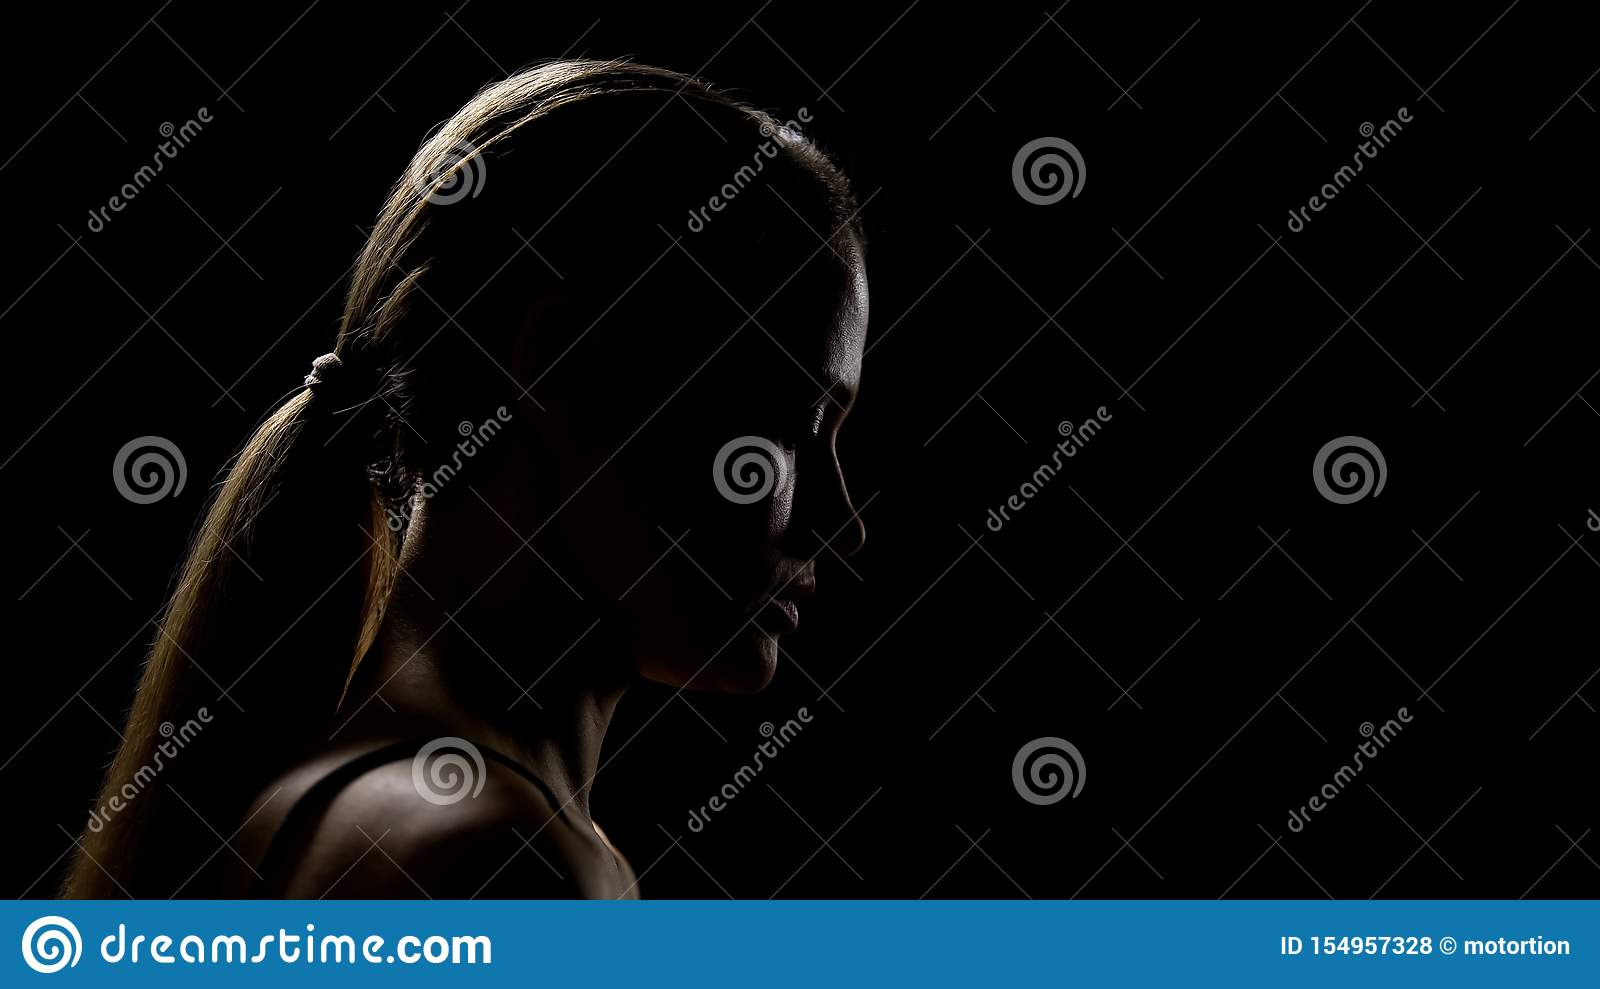 Sad woman looking down having life difficulties, feeling frustrated and insecure